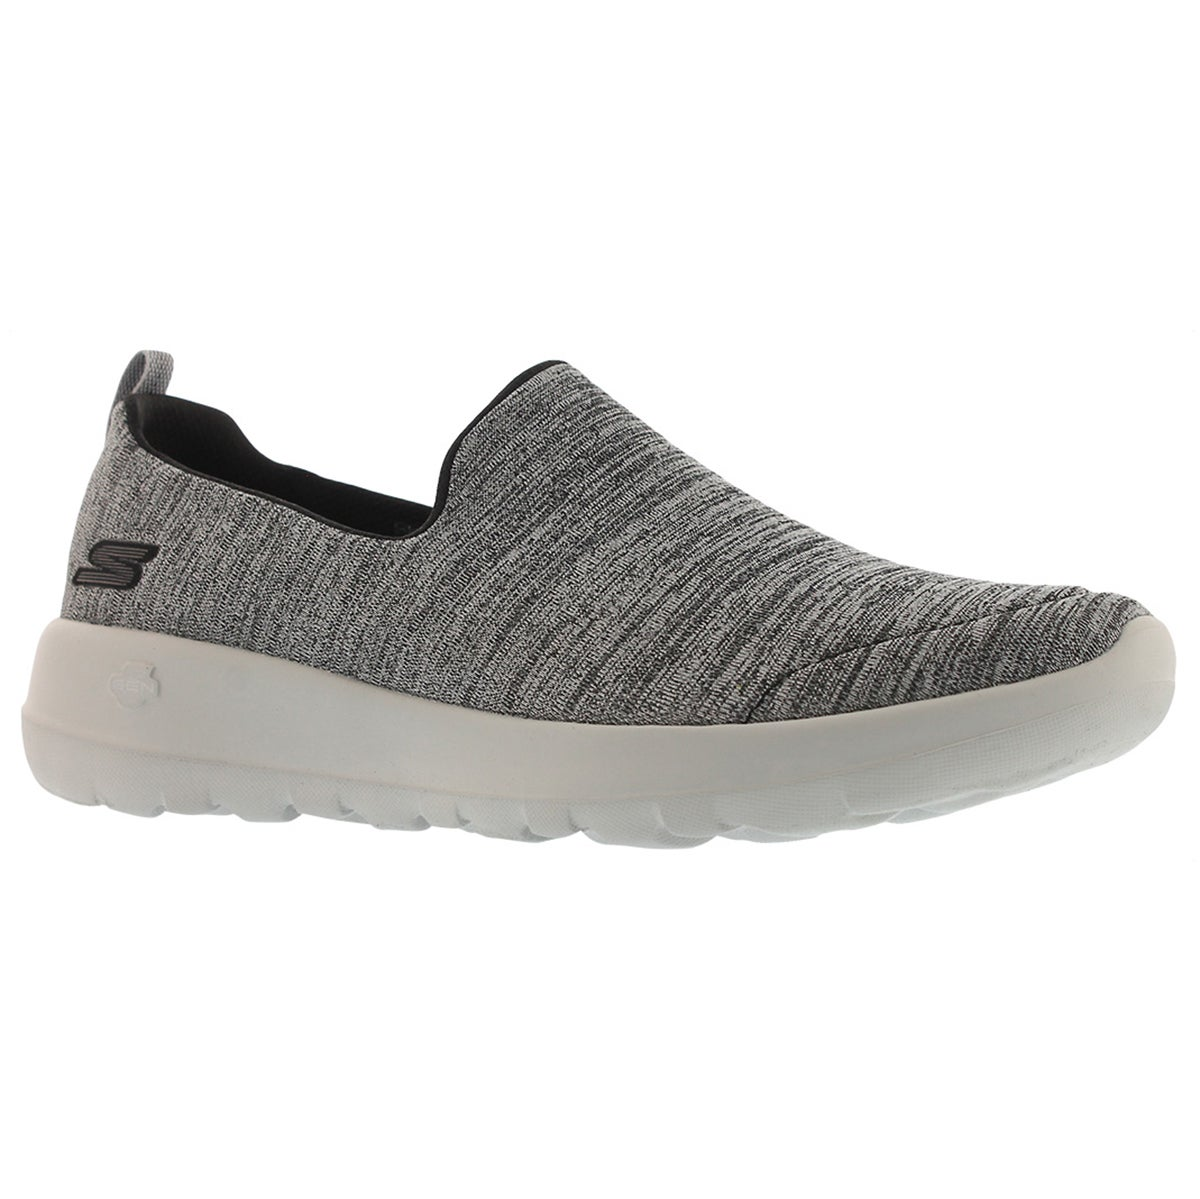 Women's GOwalk JOY ENCHANT black/grey slip ons